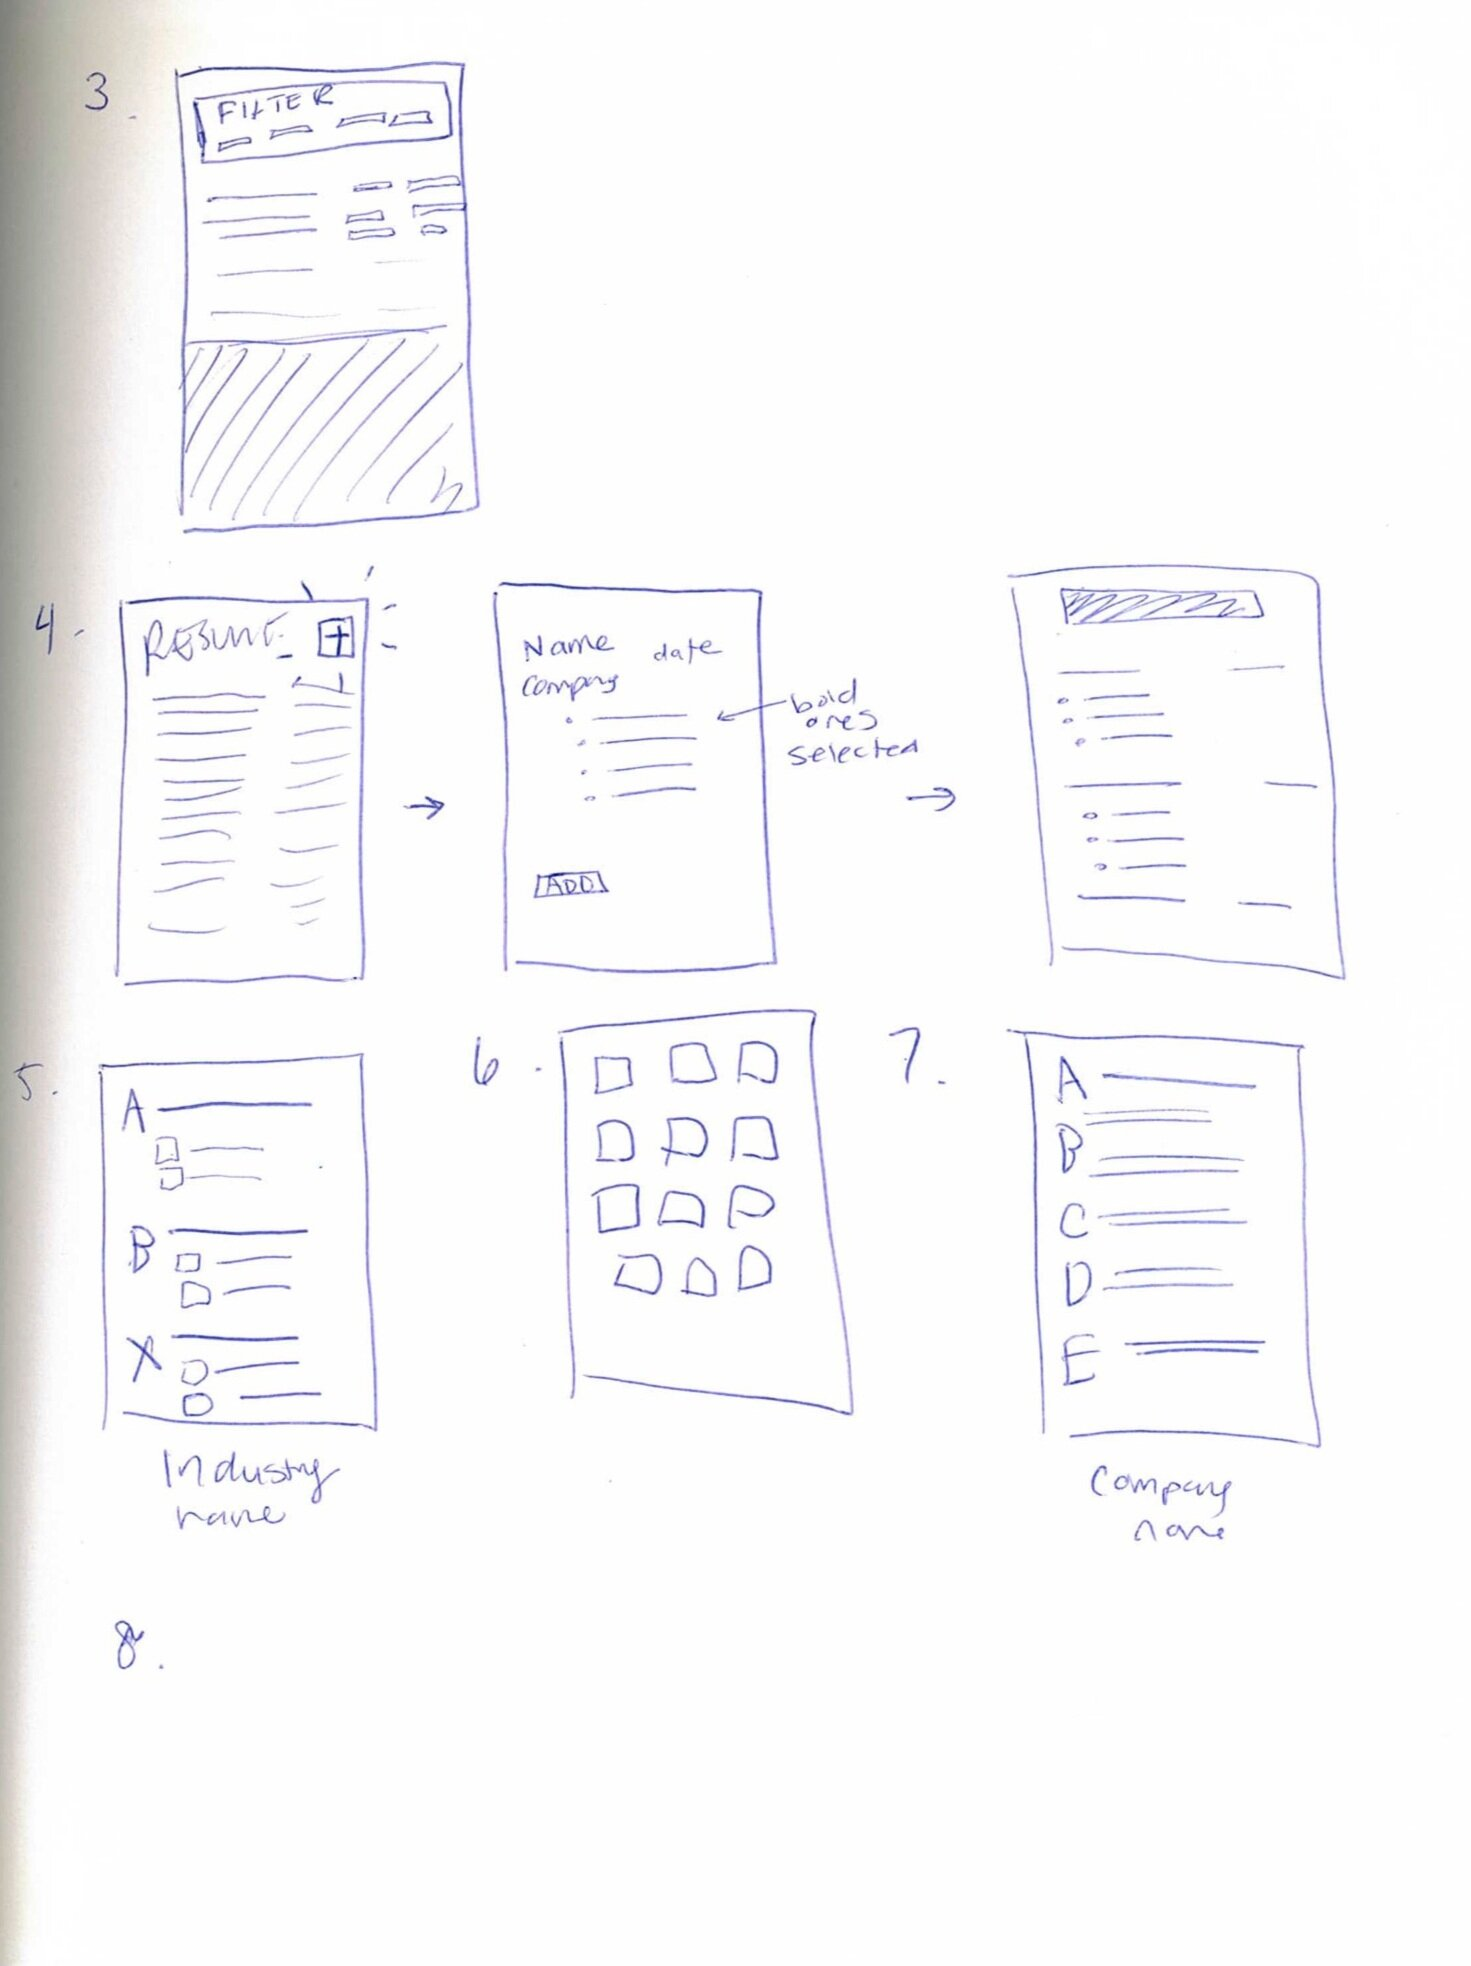 Brainstorming how the page layout for displaying company profiles would be to show company profiles